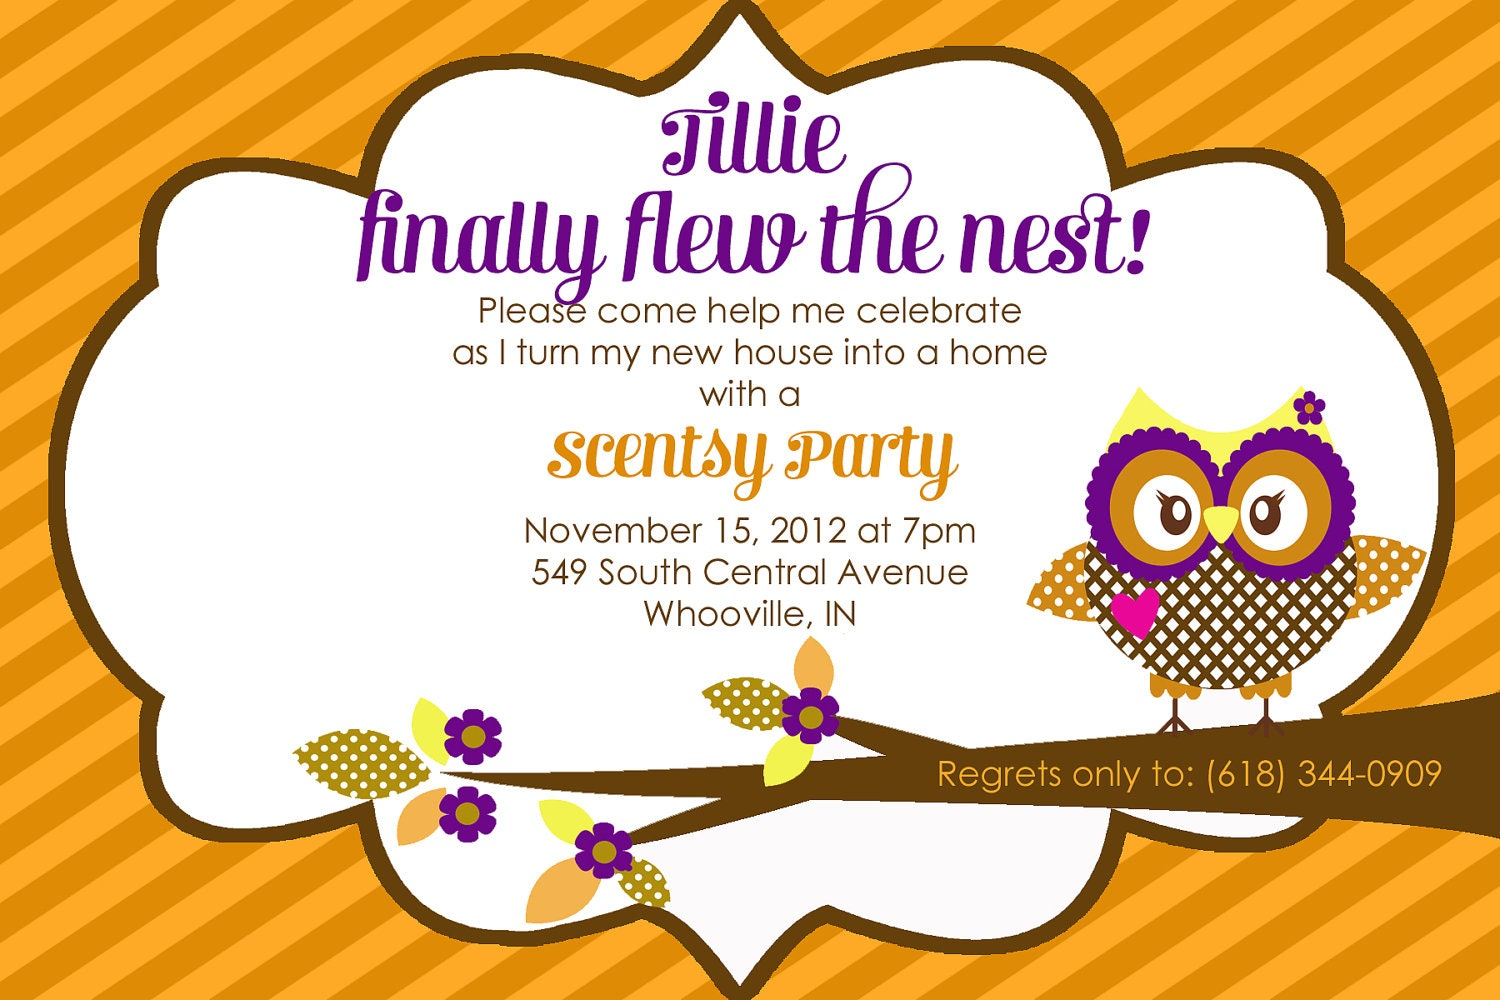 Watch more like Scentsy Catalog Party Ideas Invitation – Invitation for Housewarming Party